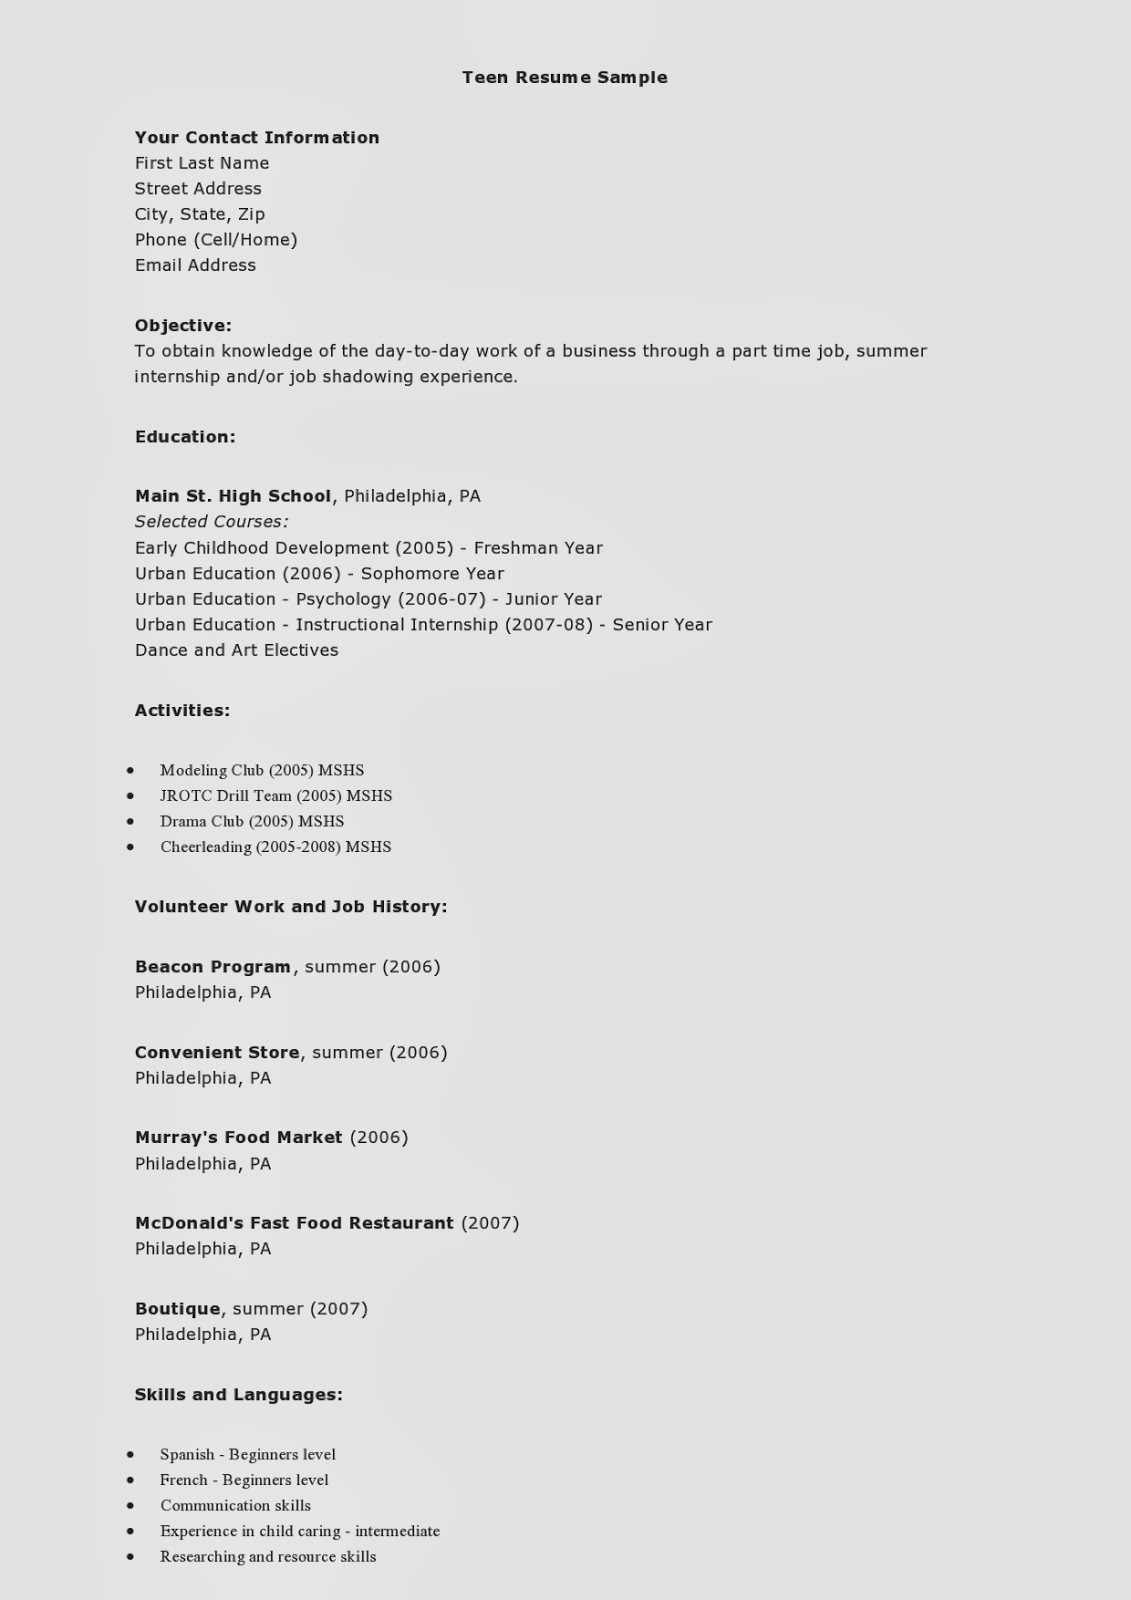 examples of resume cover letter sample resume covering letter intended for inspiring create resume for free - How To Write A Resume For Teens